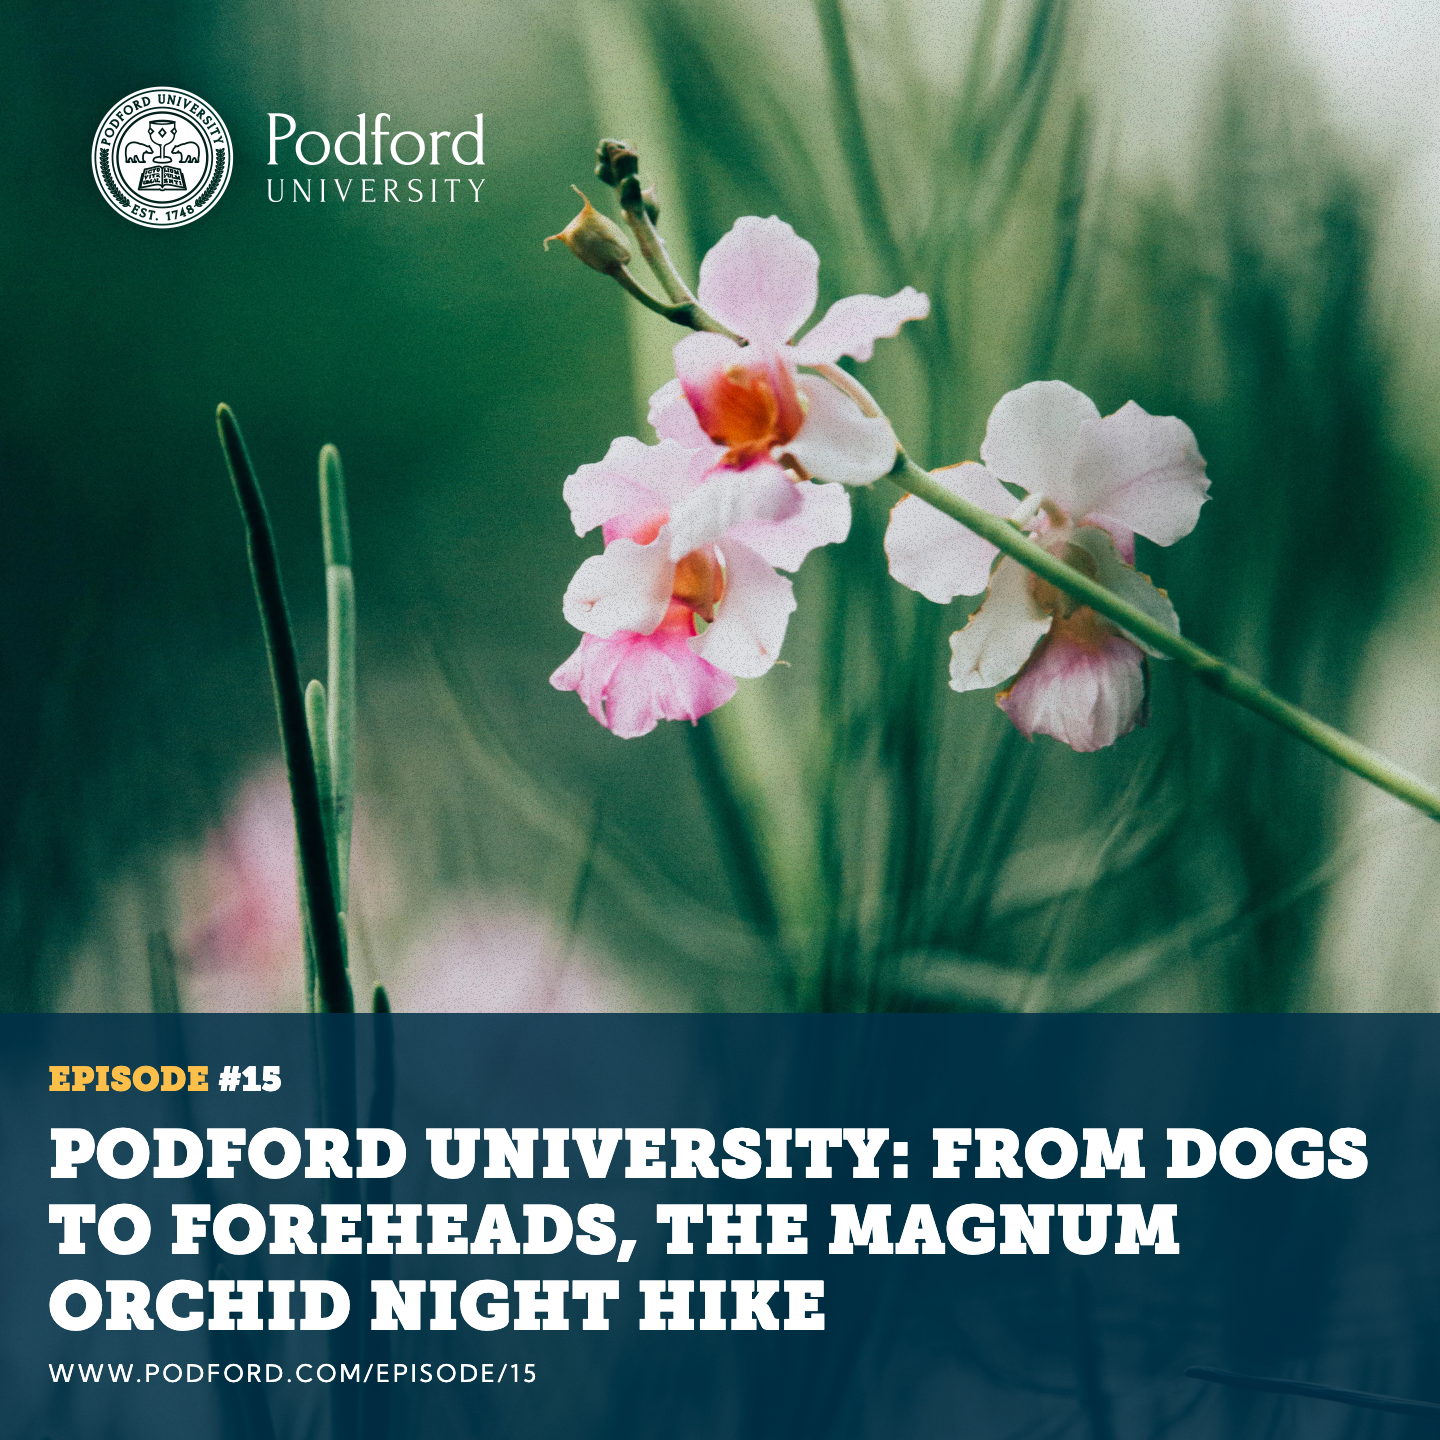 Podford University: From Dogs to Foreheads, The Magnum Orchid Night Hike